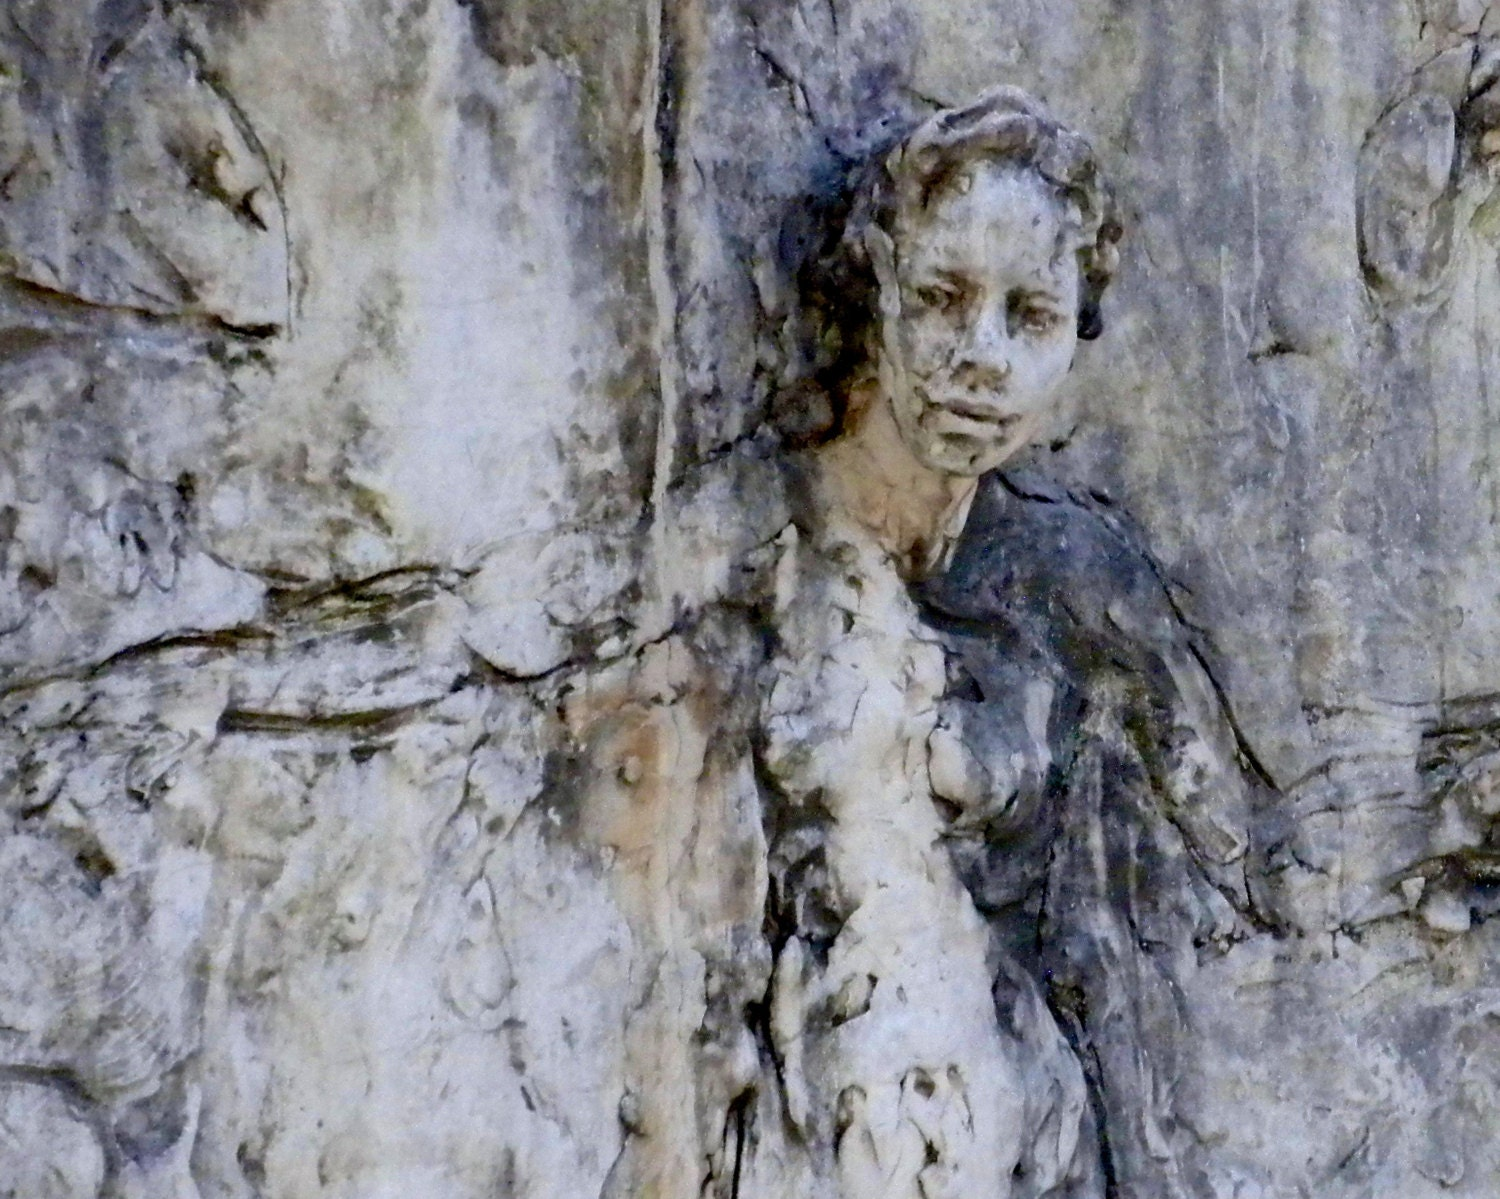 Fine Art Photography-Woman Breaking Free- Travel, Southern, Artistic, Sculptural Photography-8x10 Wall Art - PetitePastiche